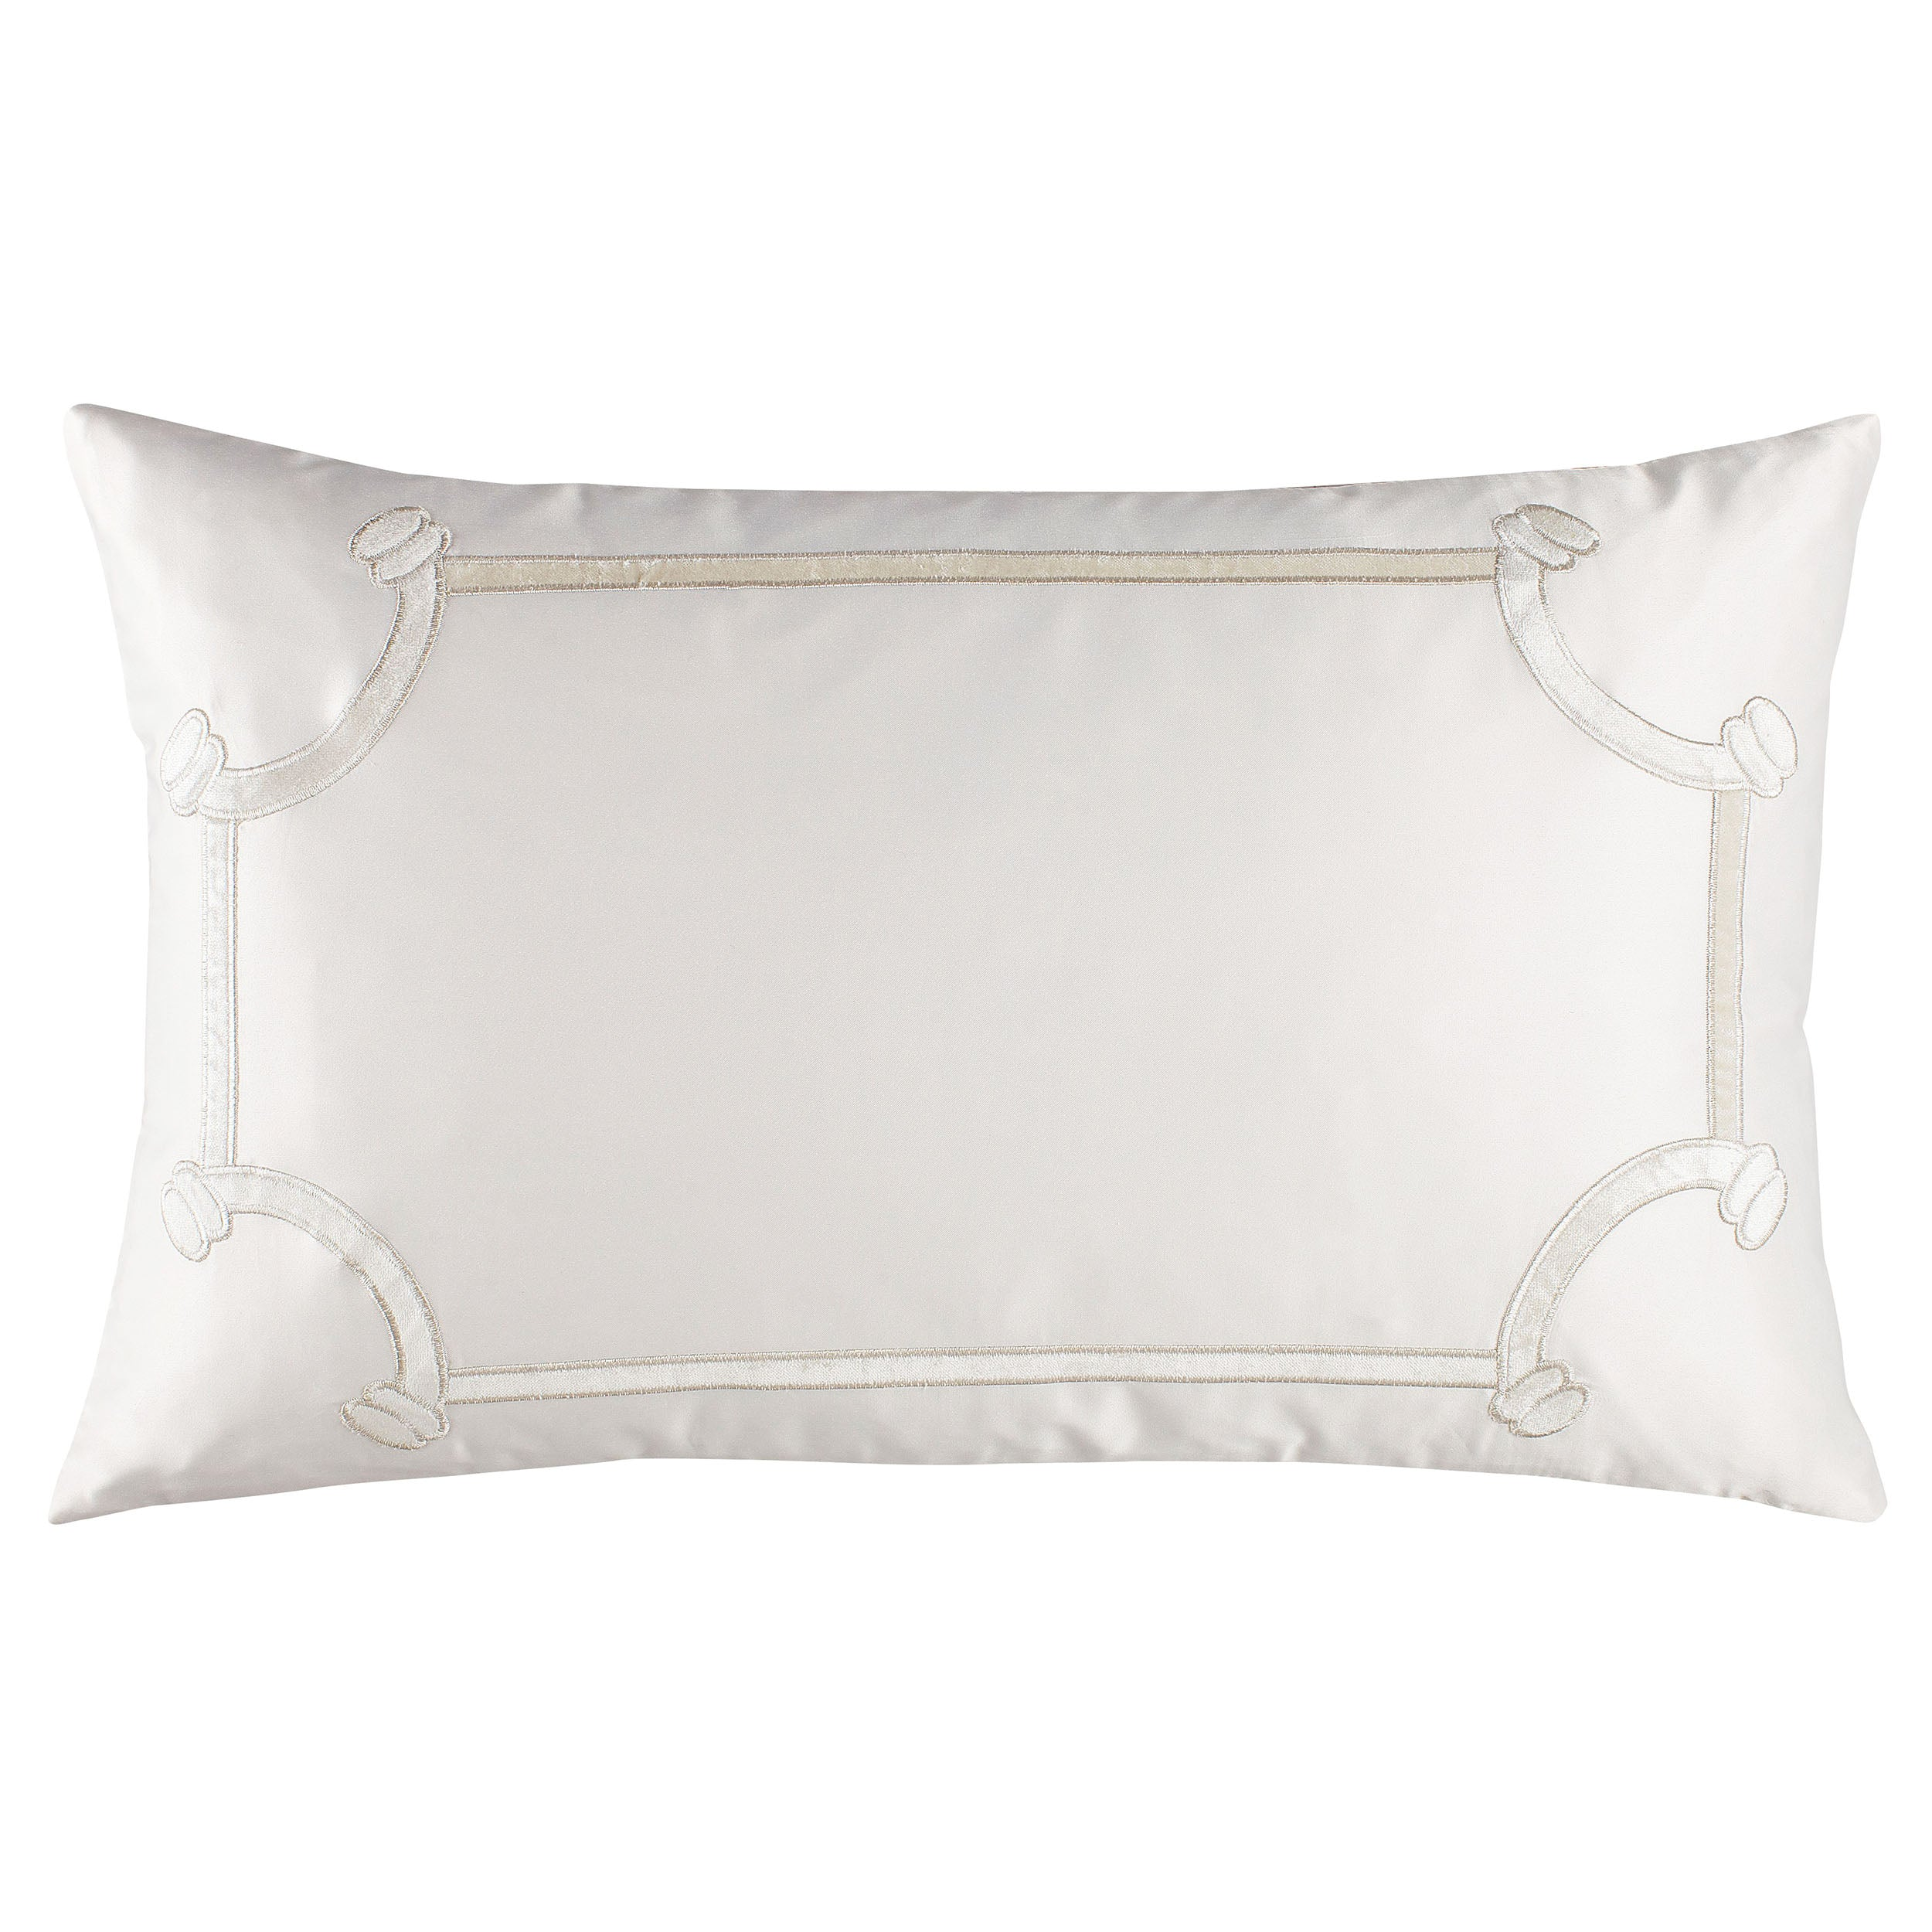 Vendome Ivory Boudoir Pillow - Lili Alessandra Throw Pillows By Lili Alessandra